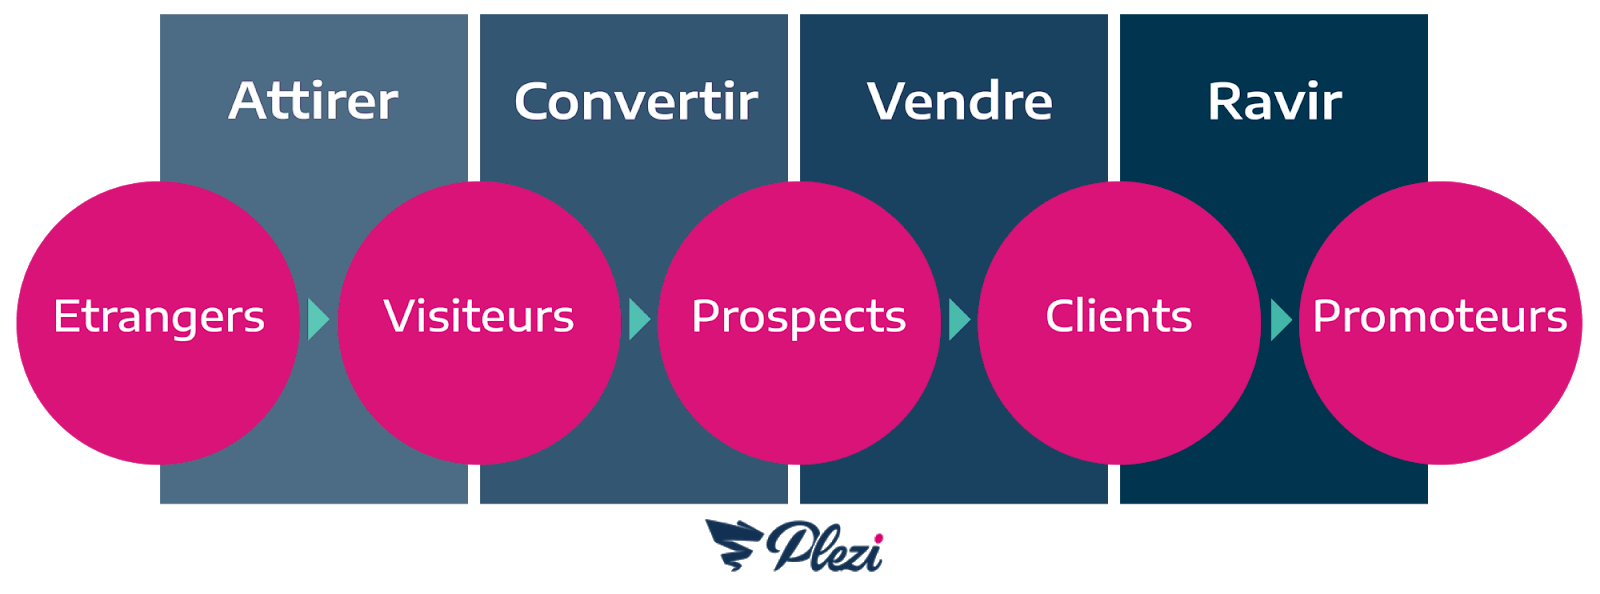 schéma des étapes du funnel marketing B2B